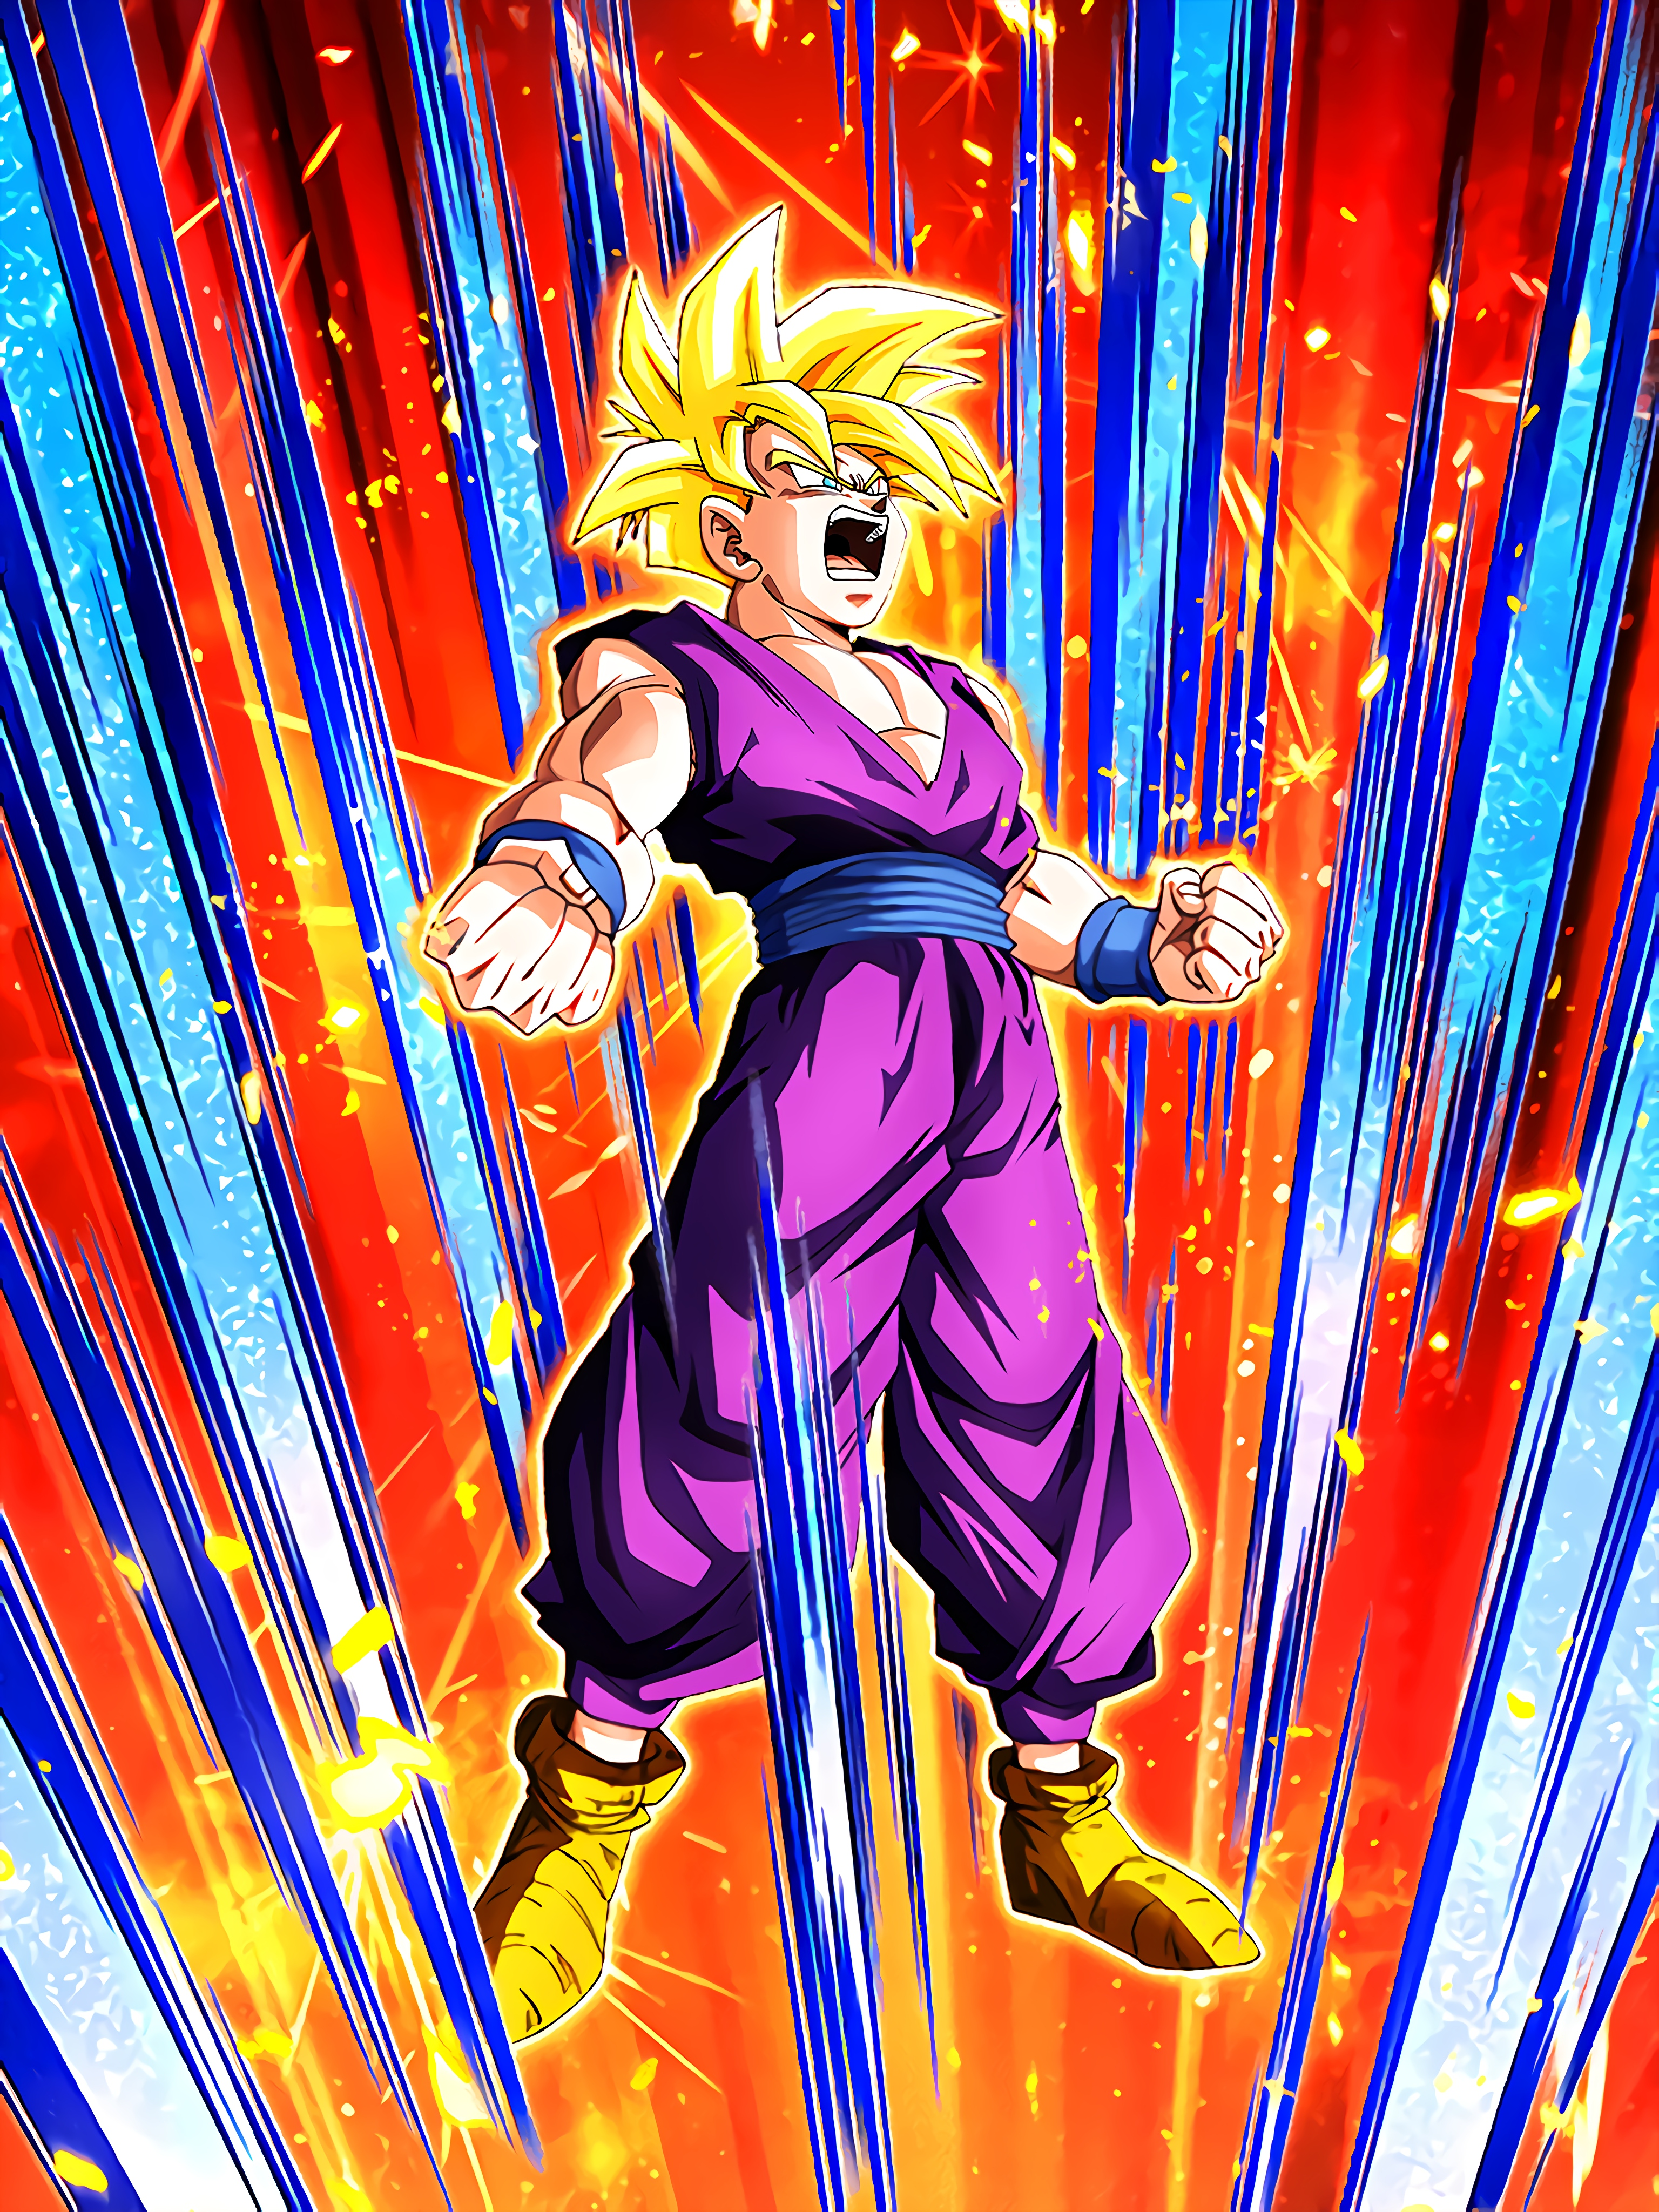 Warrior Beyond Goku Super Saiyan Gohan Youth Art (Dragon Ball Z Dokkan Battle).jpg